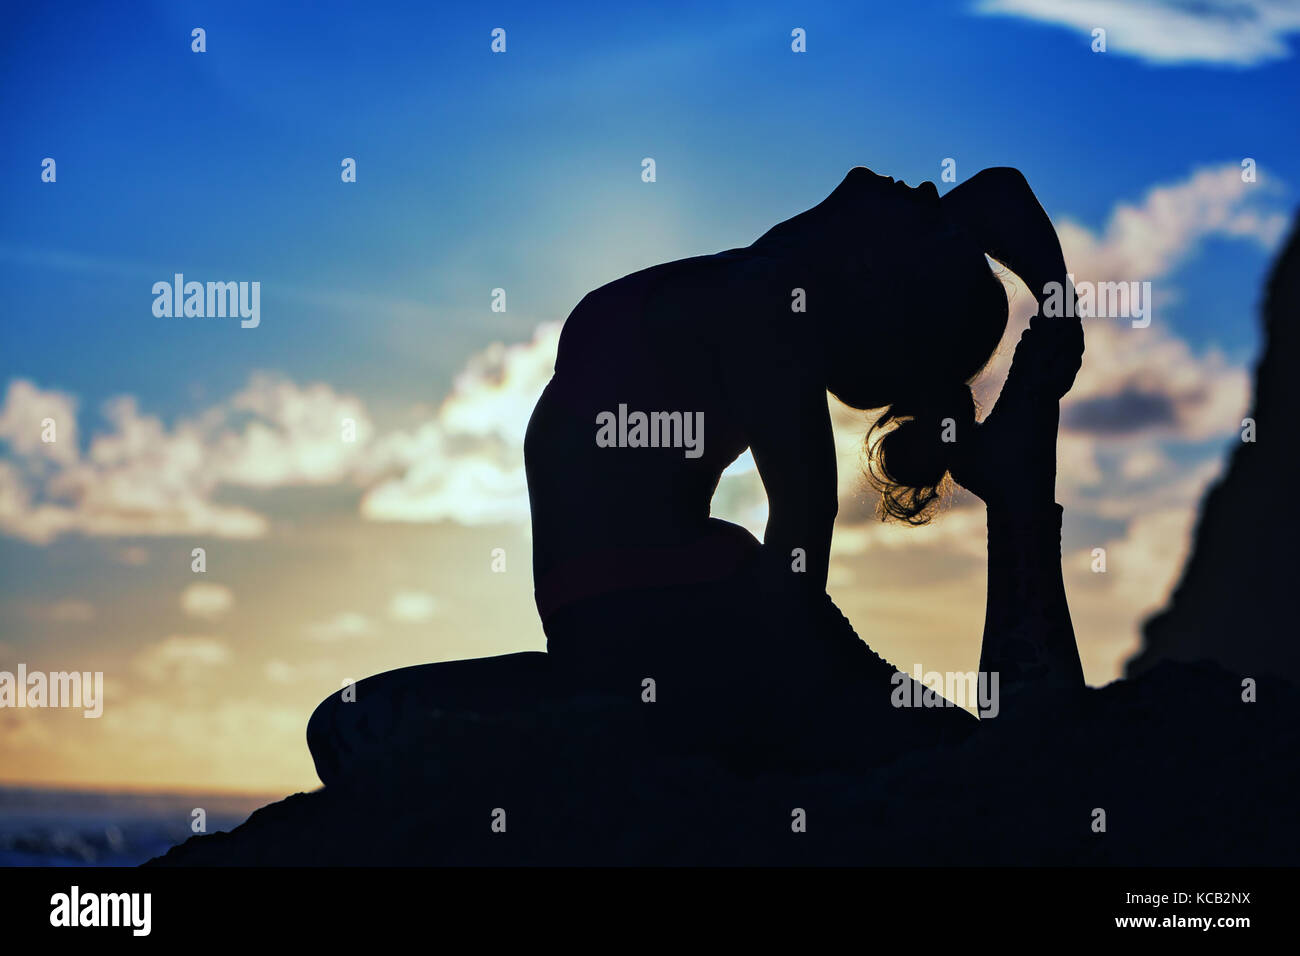 Woman black silhouette on sunset sky background. Young active girl sit in yoga pose on beach rock, stretching to Stock Photo